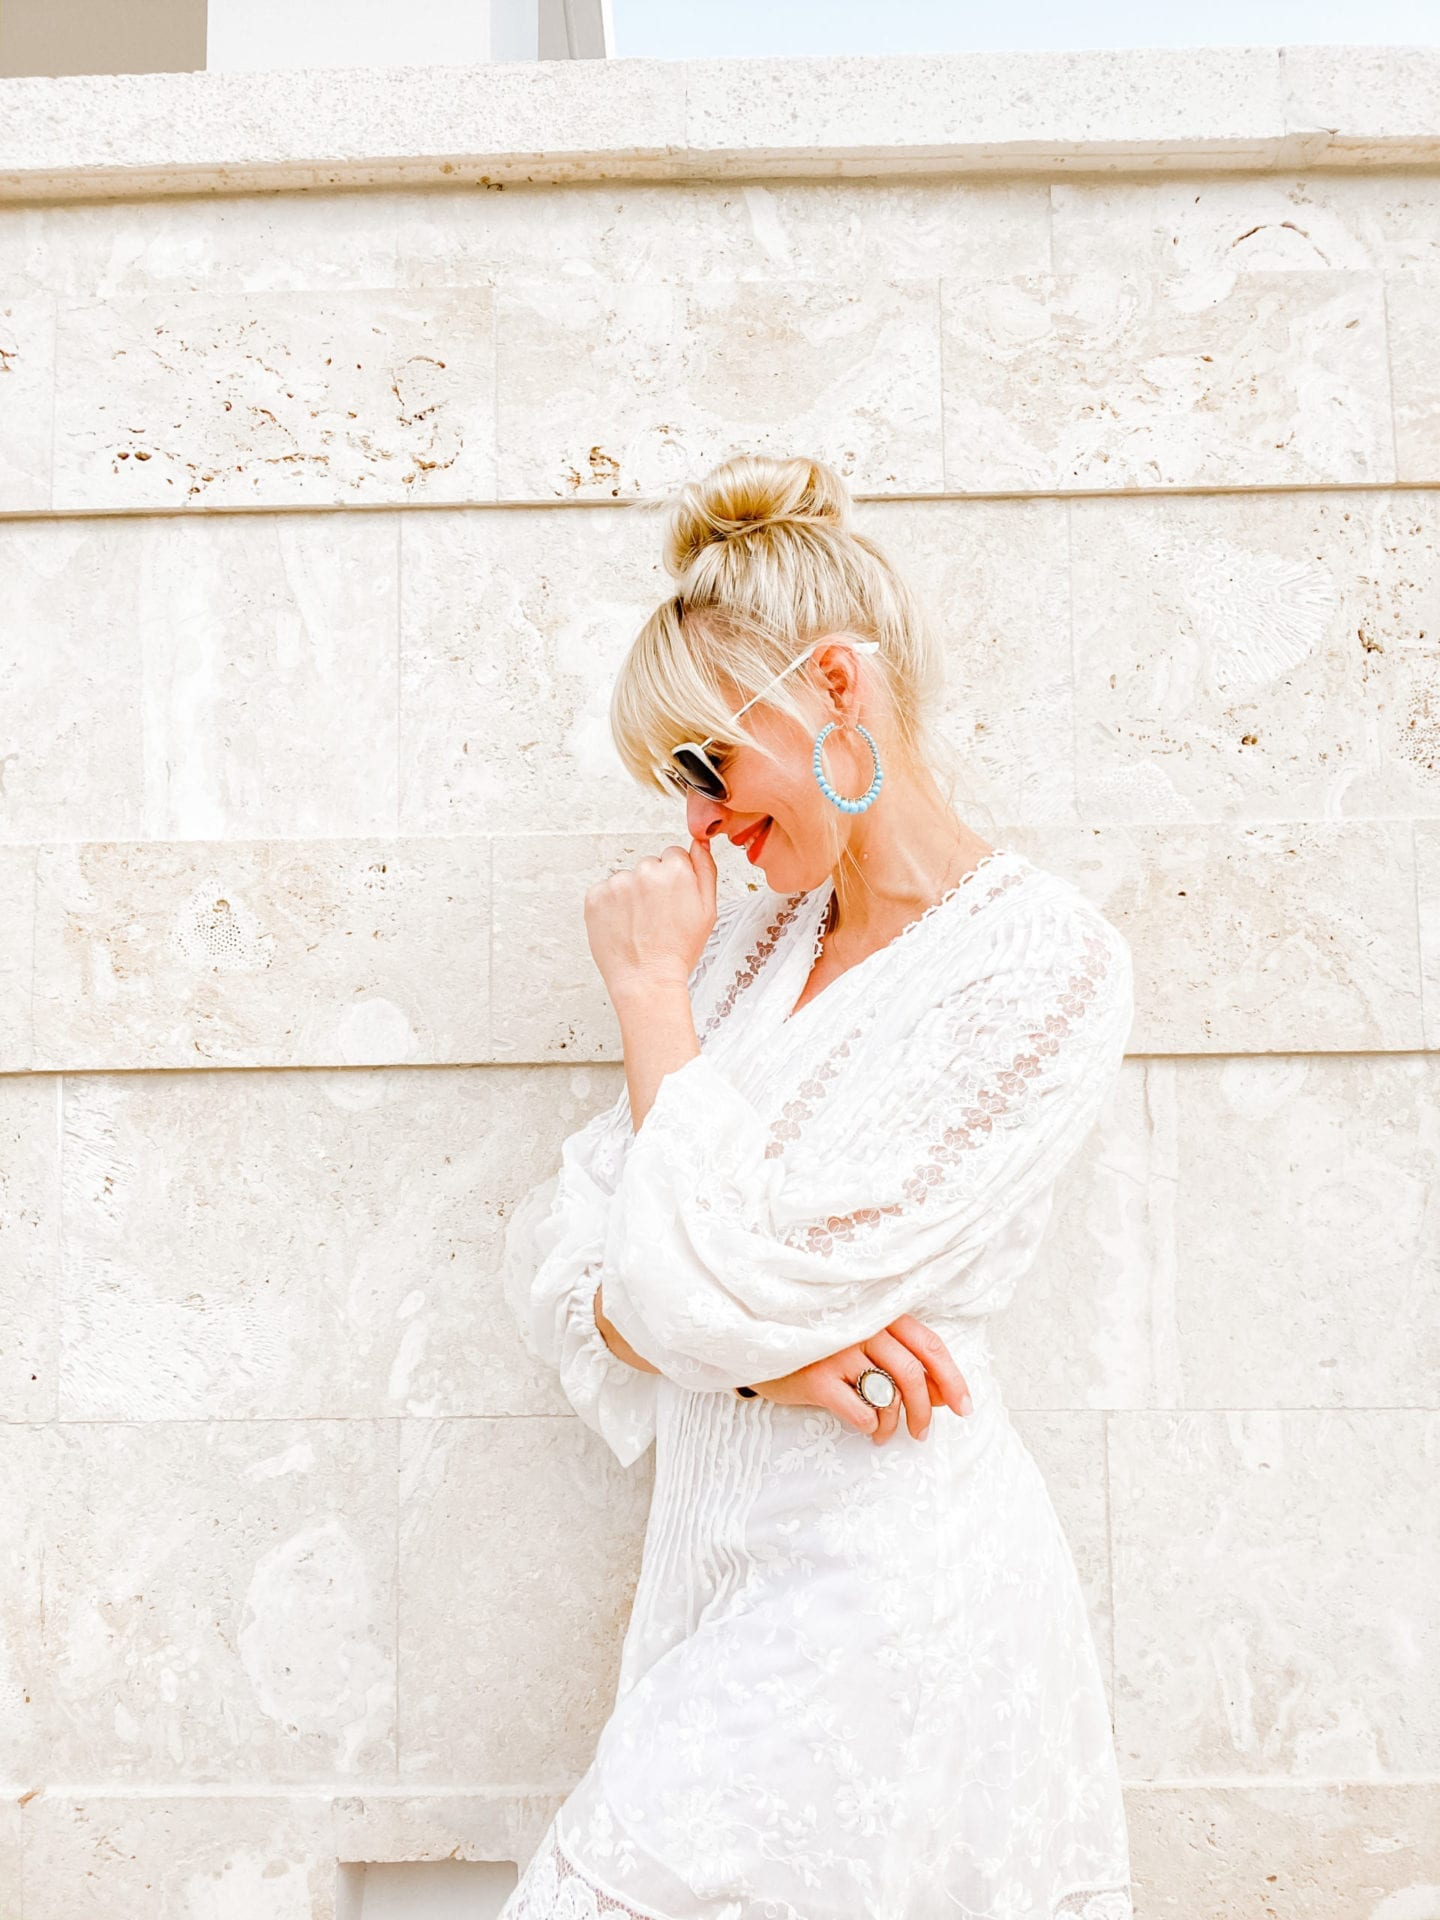 A new travel blog post from lifestyle blogger Kelly Page for blueGrayGal talking about Travel Trends 2020. Kelly poses in an Alexis white lace dresses with top knot bun.